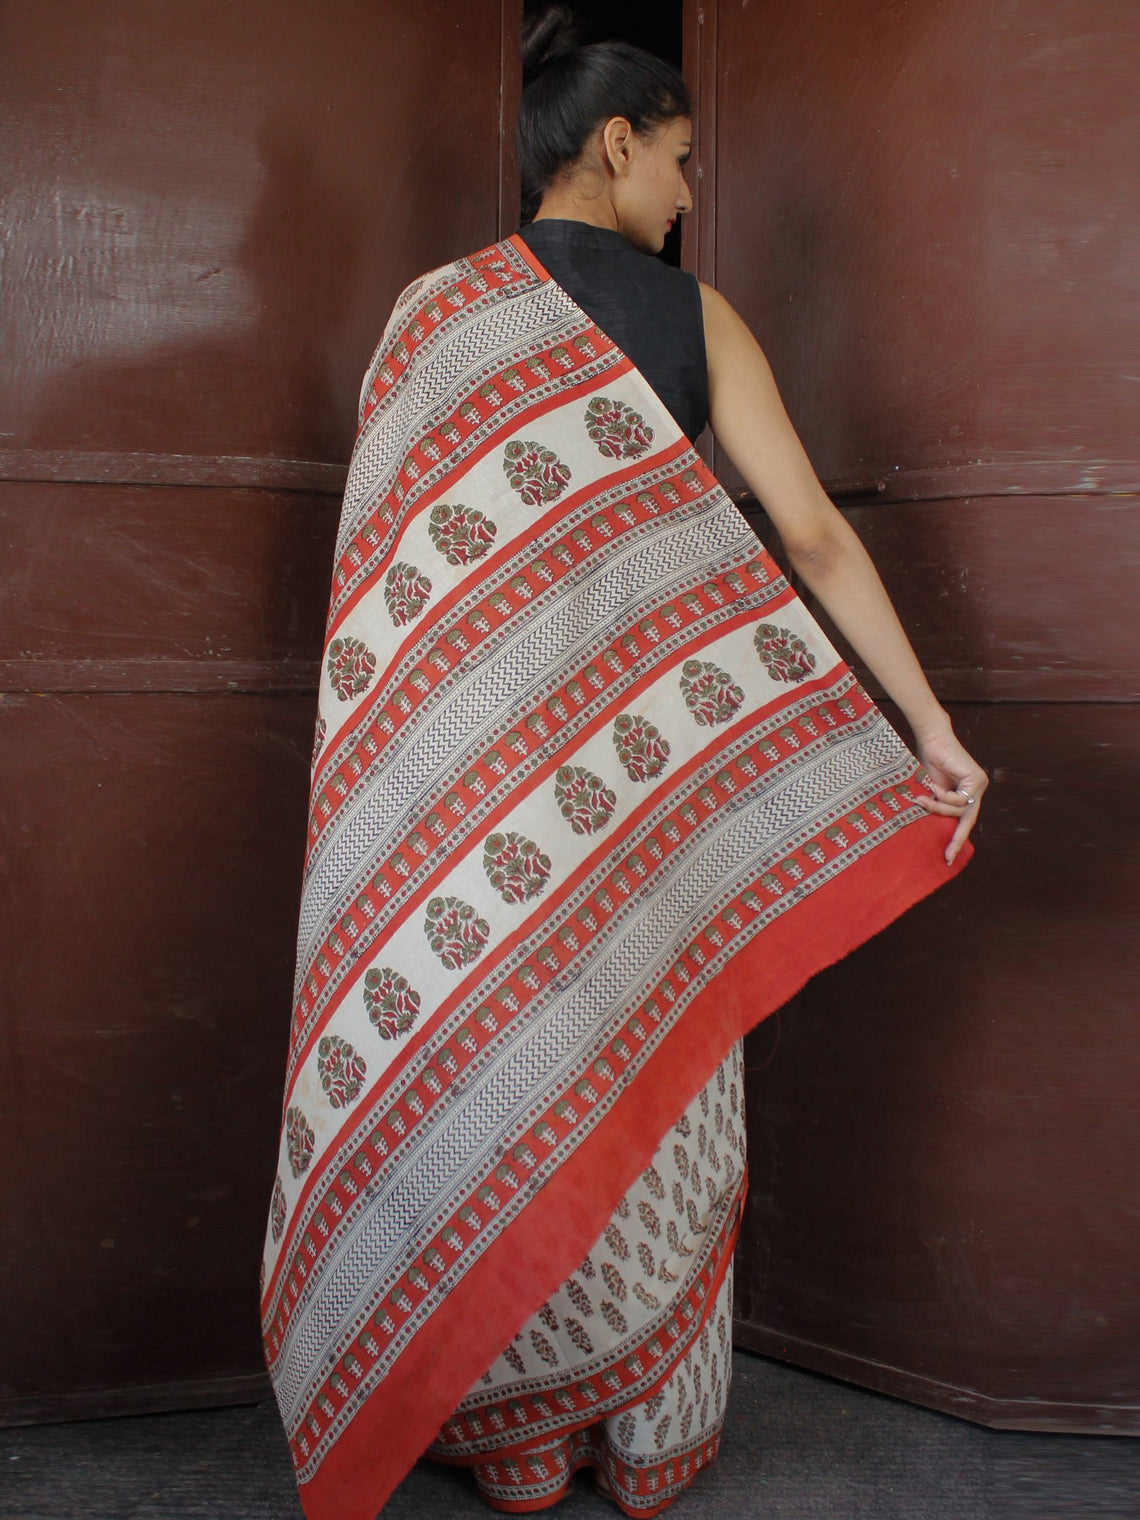 Beige Maroon Green Black Hand Block Printed in Natural Colors Cotton Mul Saree - S031703678